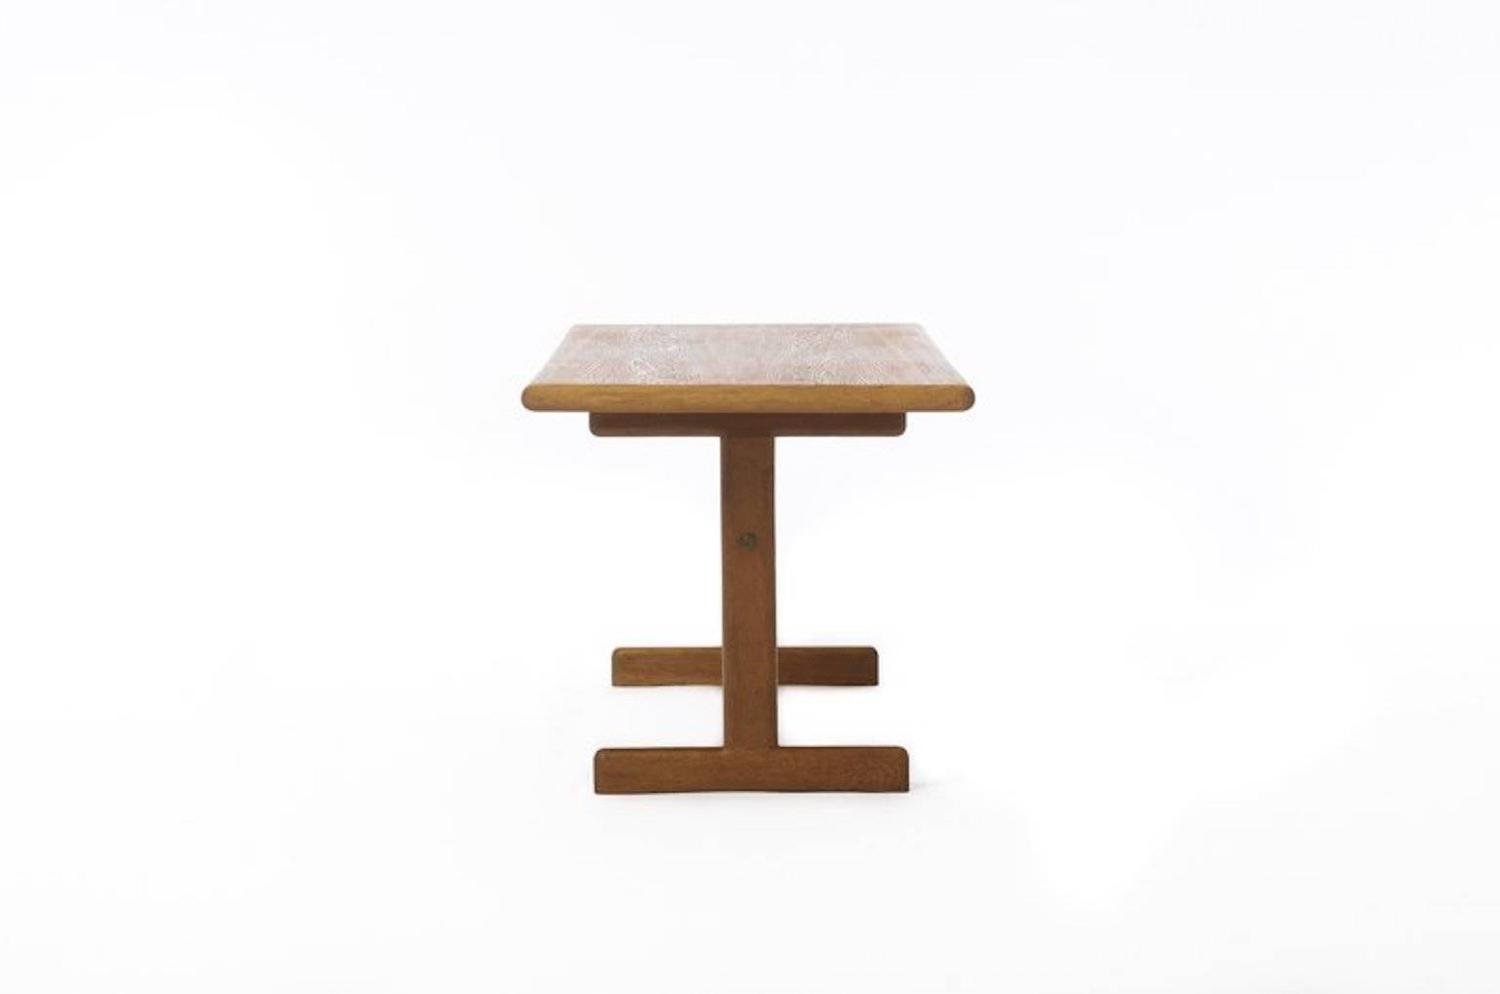 Vintage Danish Modern Coffee Table In White Oak For Sale At 1stdibs